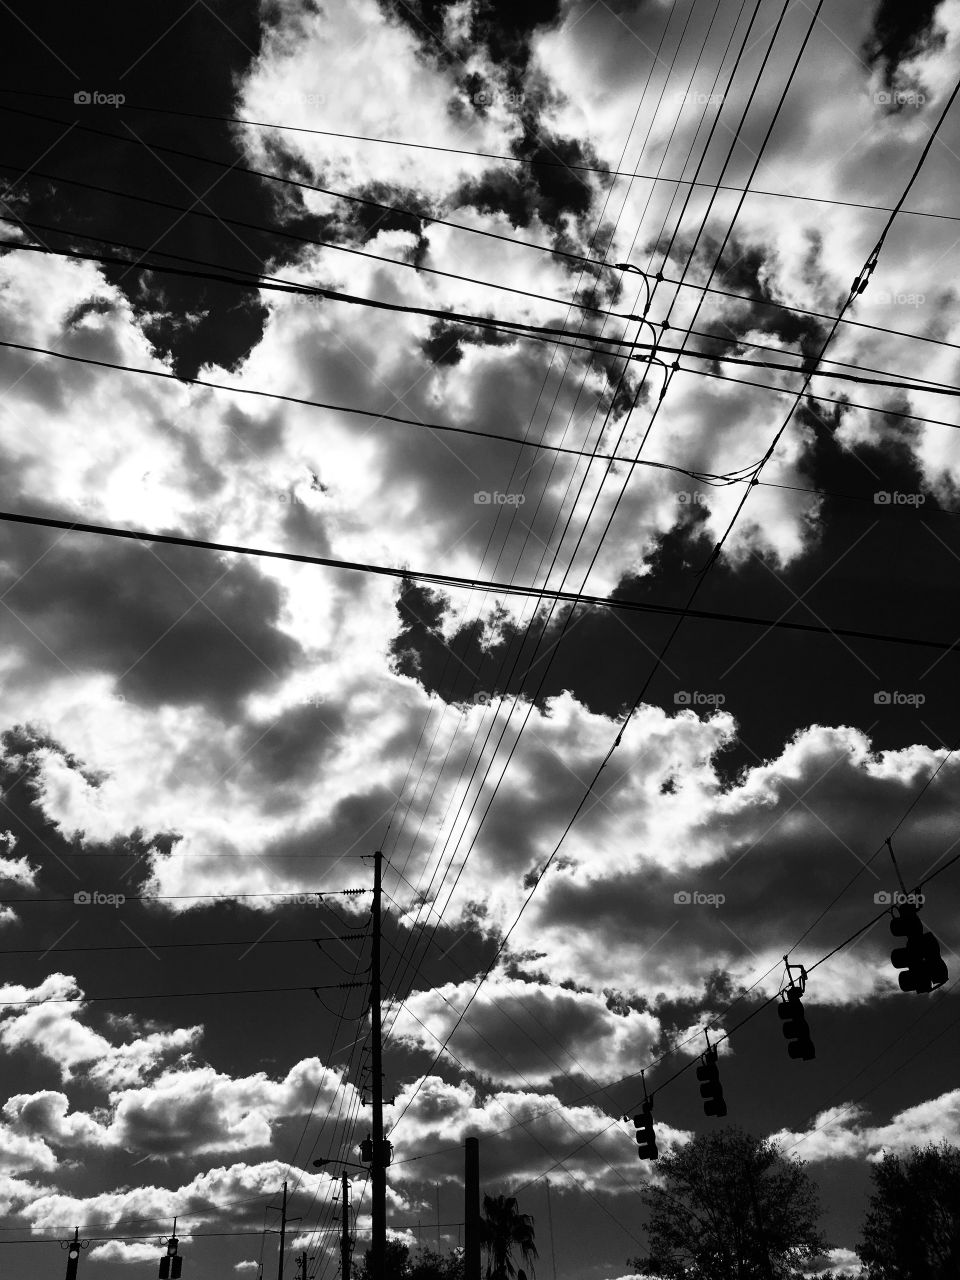 Clouds and power lines in noir et blanc in Florida